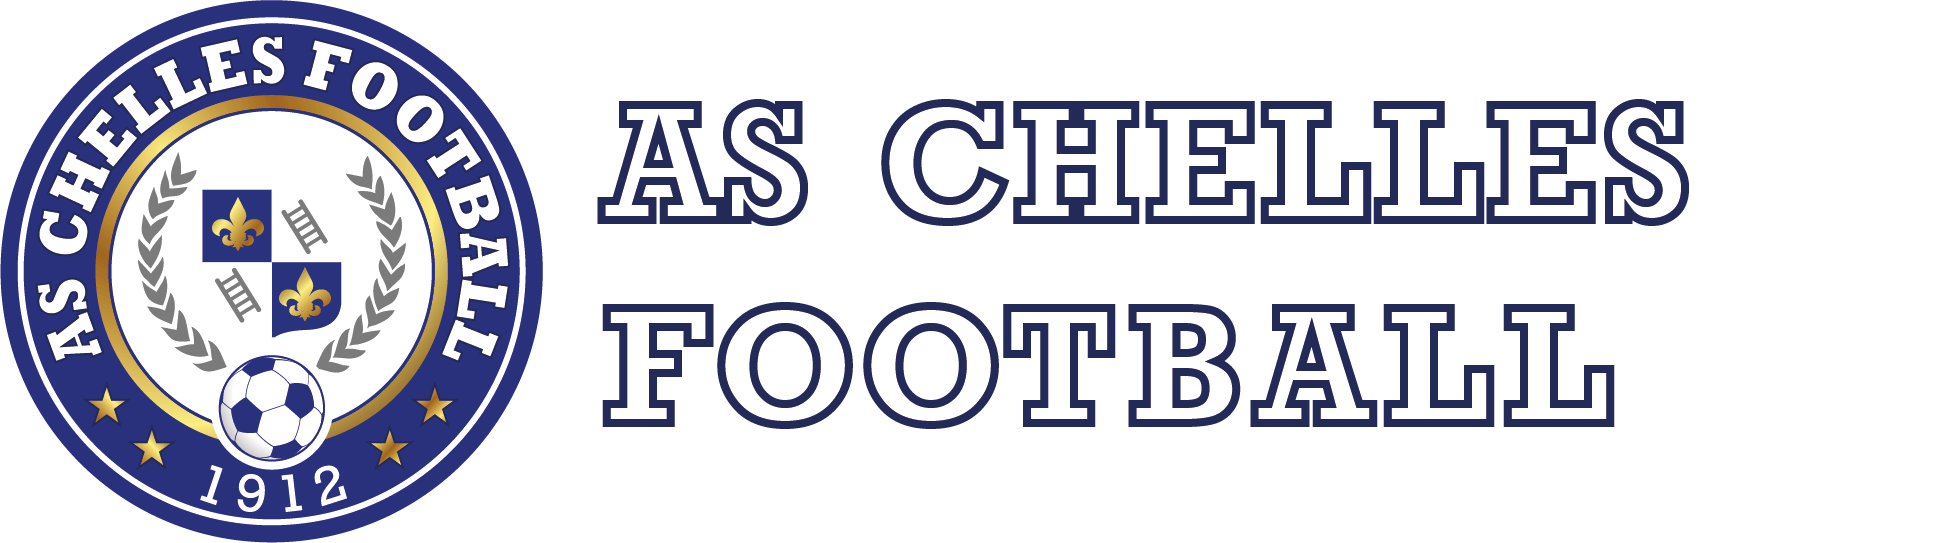 As Chelles Football